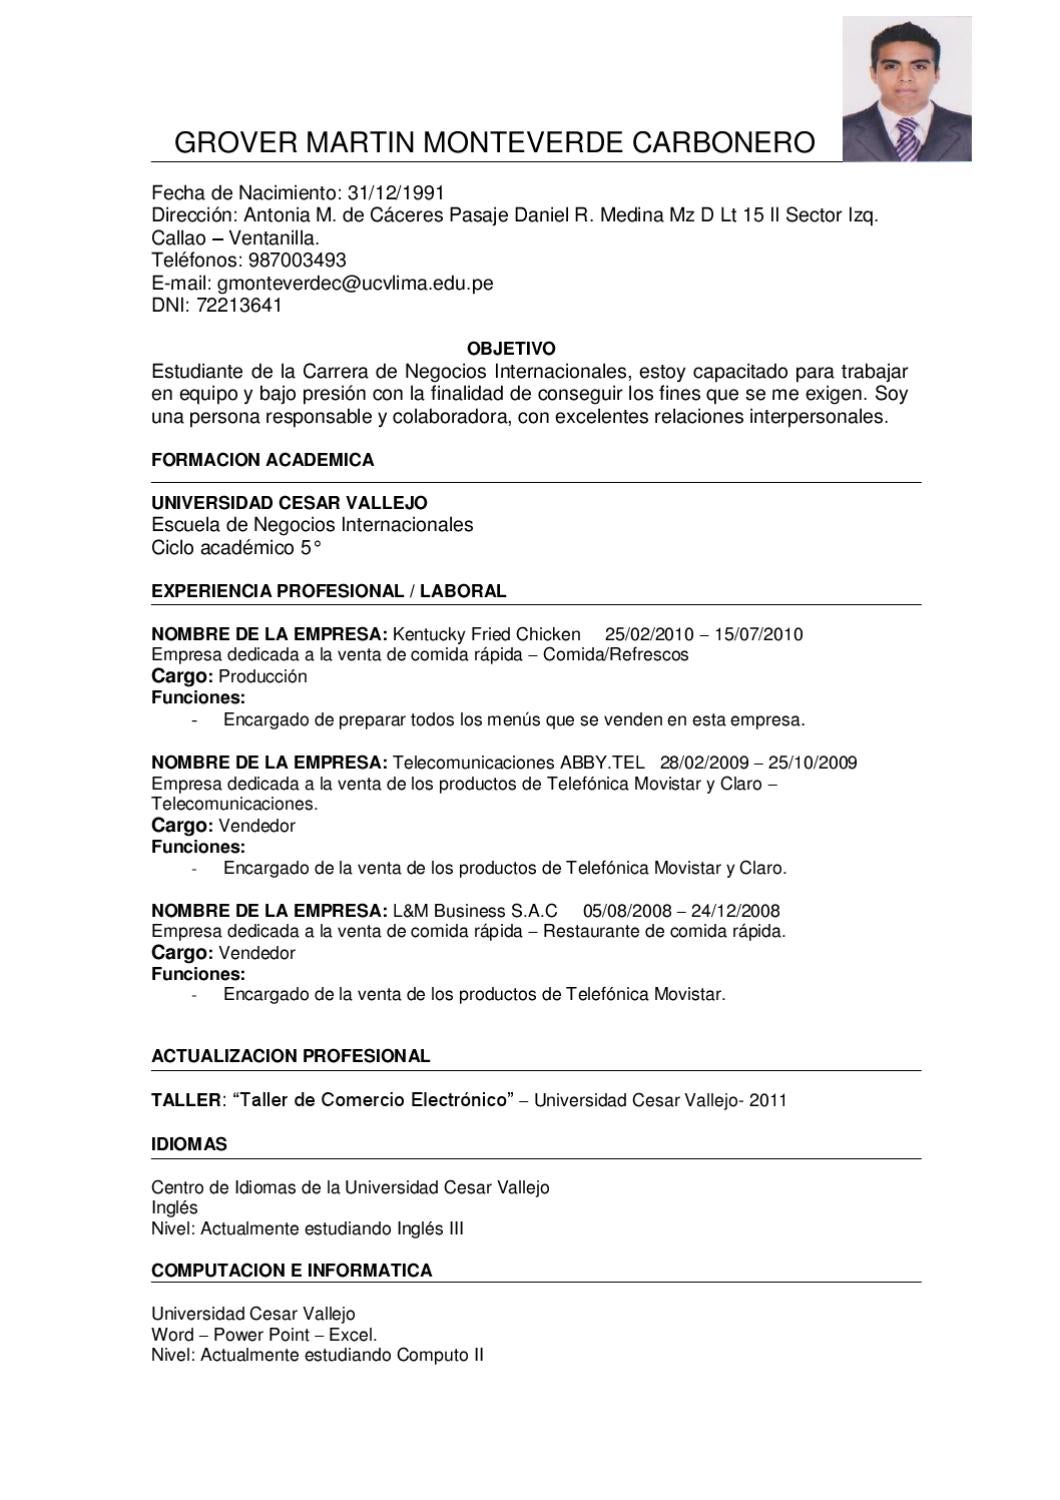 Curriculum Vitae by Grover Monteverde - issuu